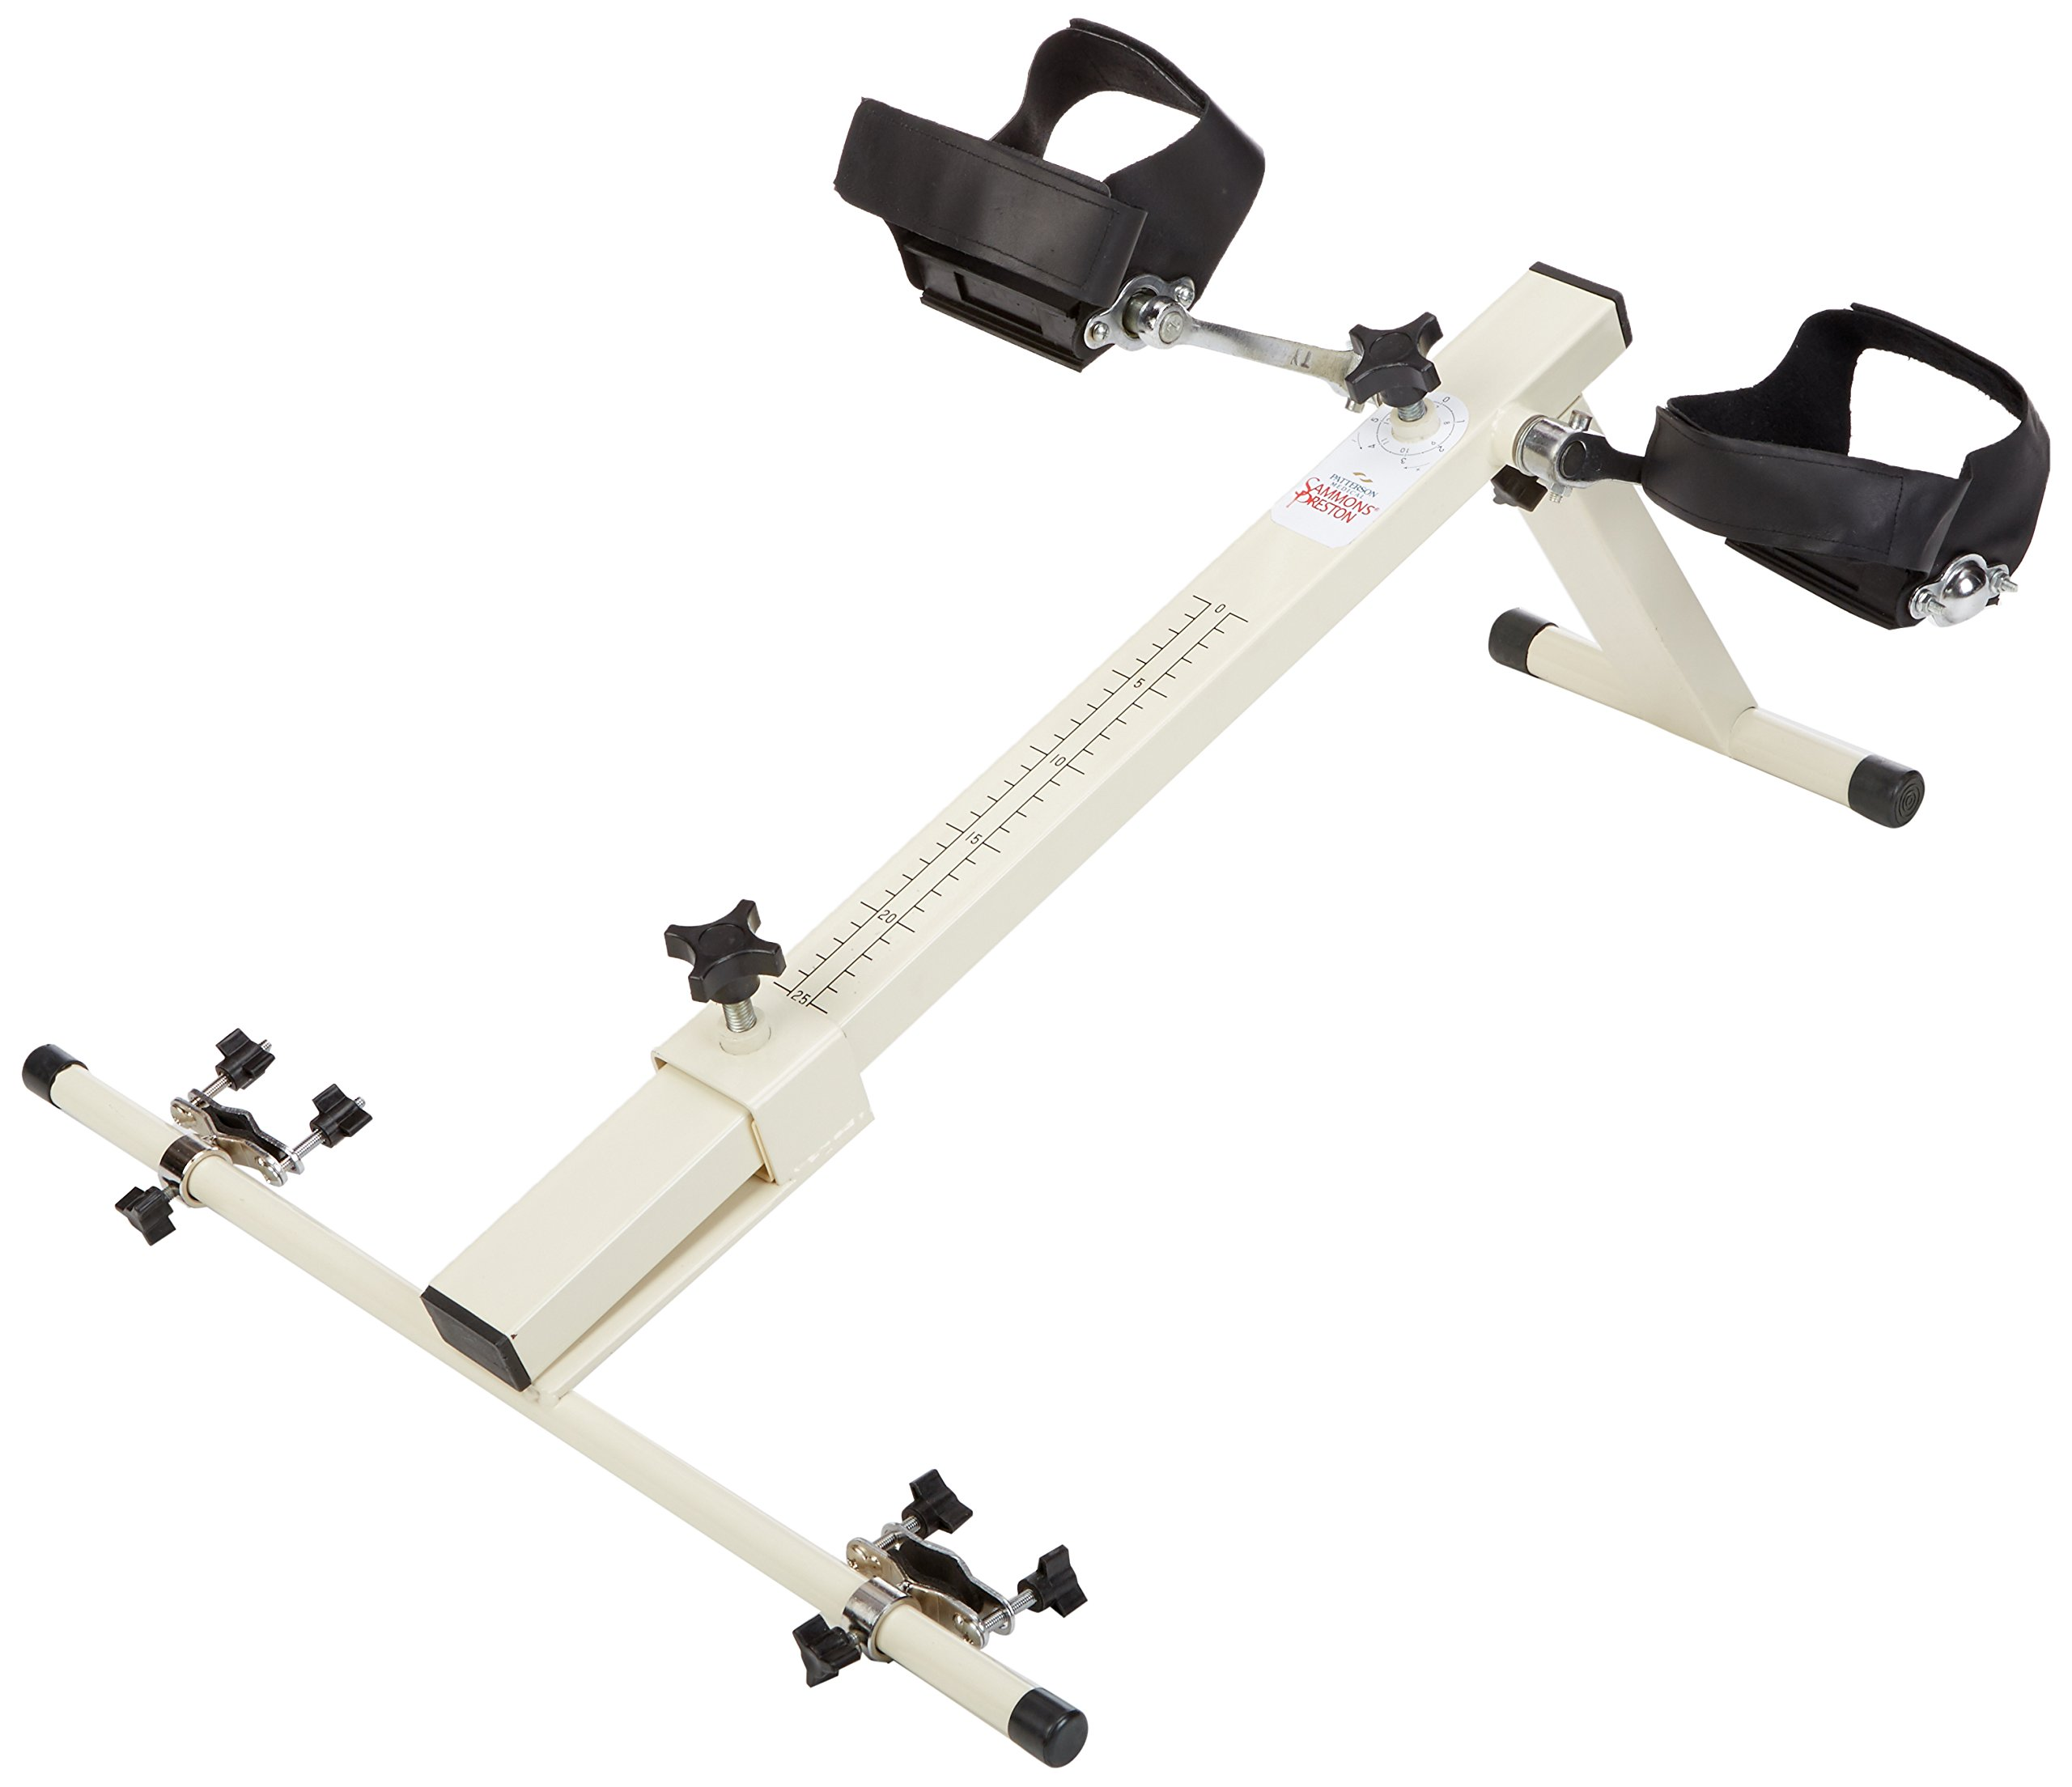 Sammons Preston Restorator III Home Model, Pedal Exerciser for Seated Cycling, At-Home Physical Therapy Equipment, Bicycle Peddler for Chairs and Wheelchairs, Desk Peddles for Low-Impact Exercise